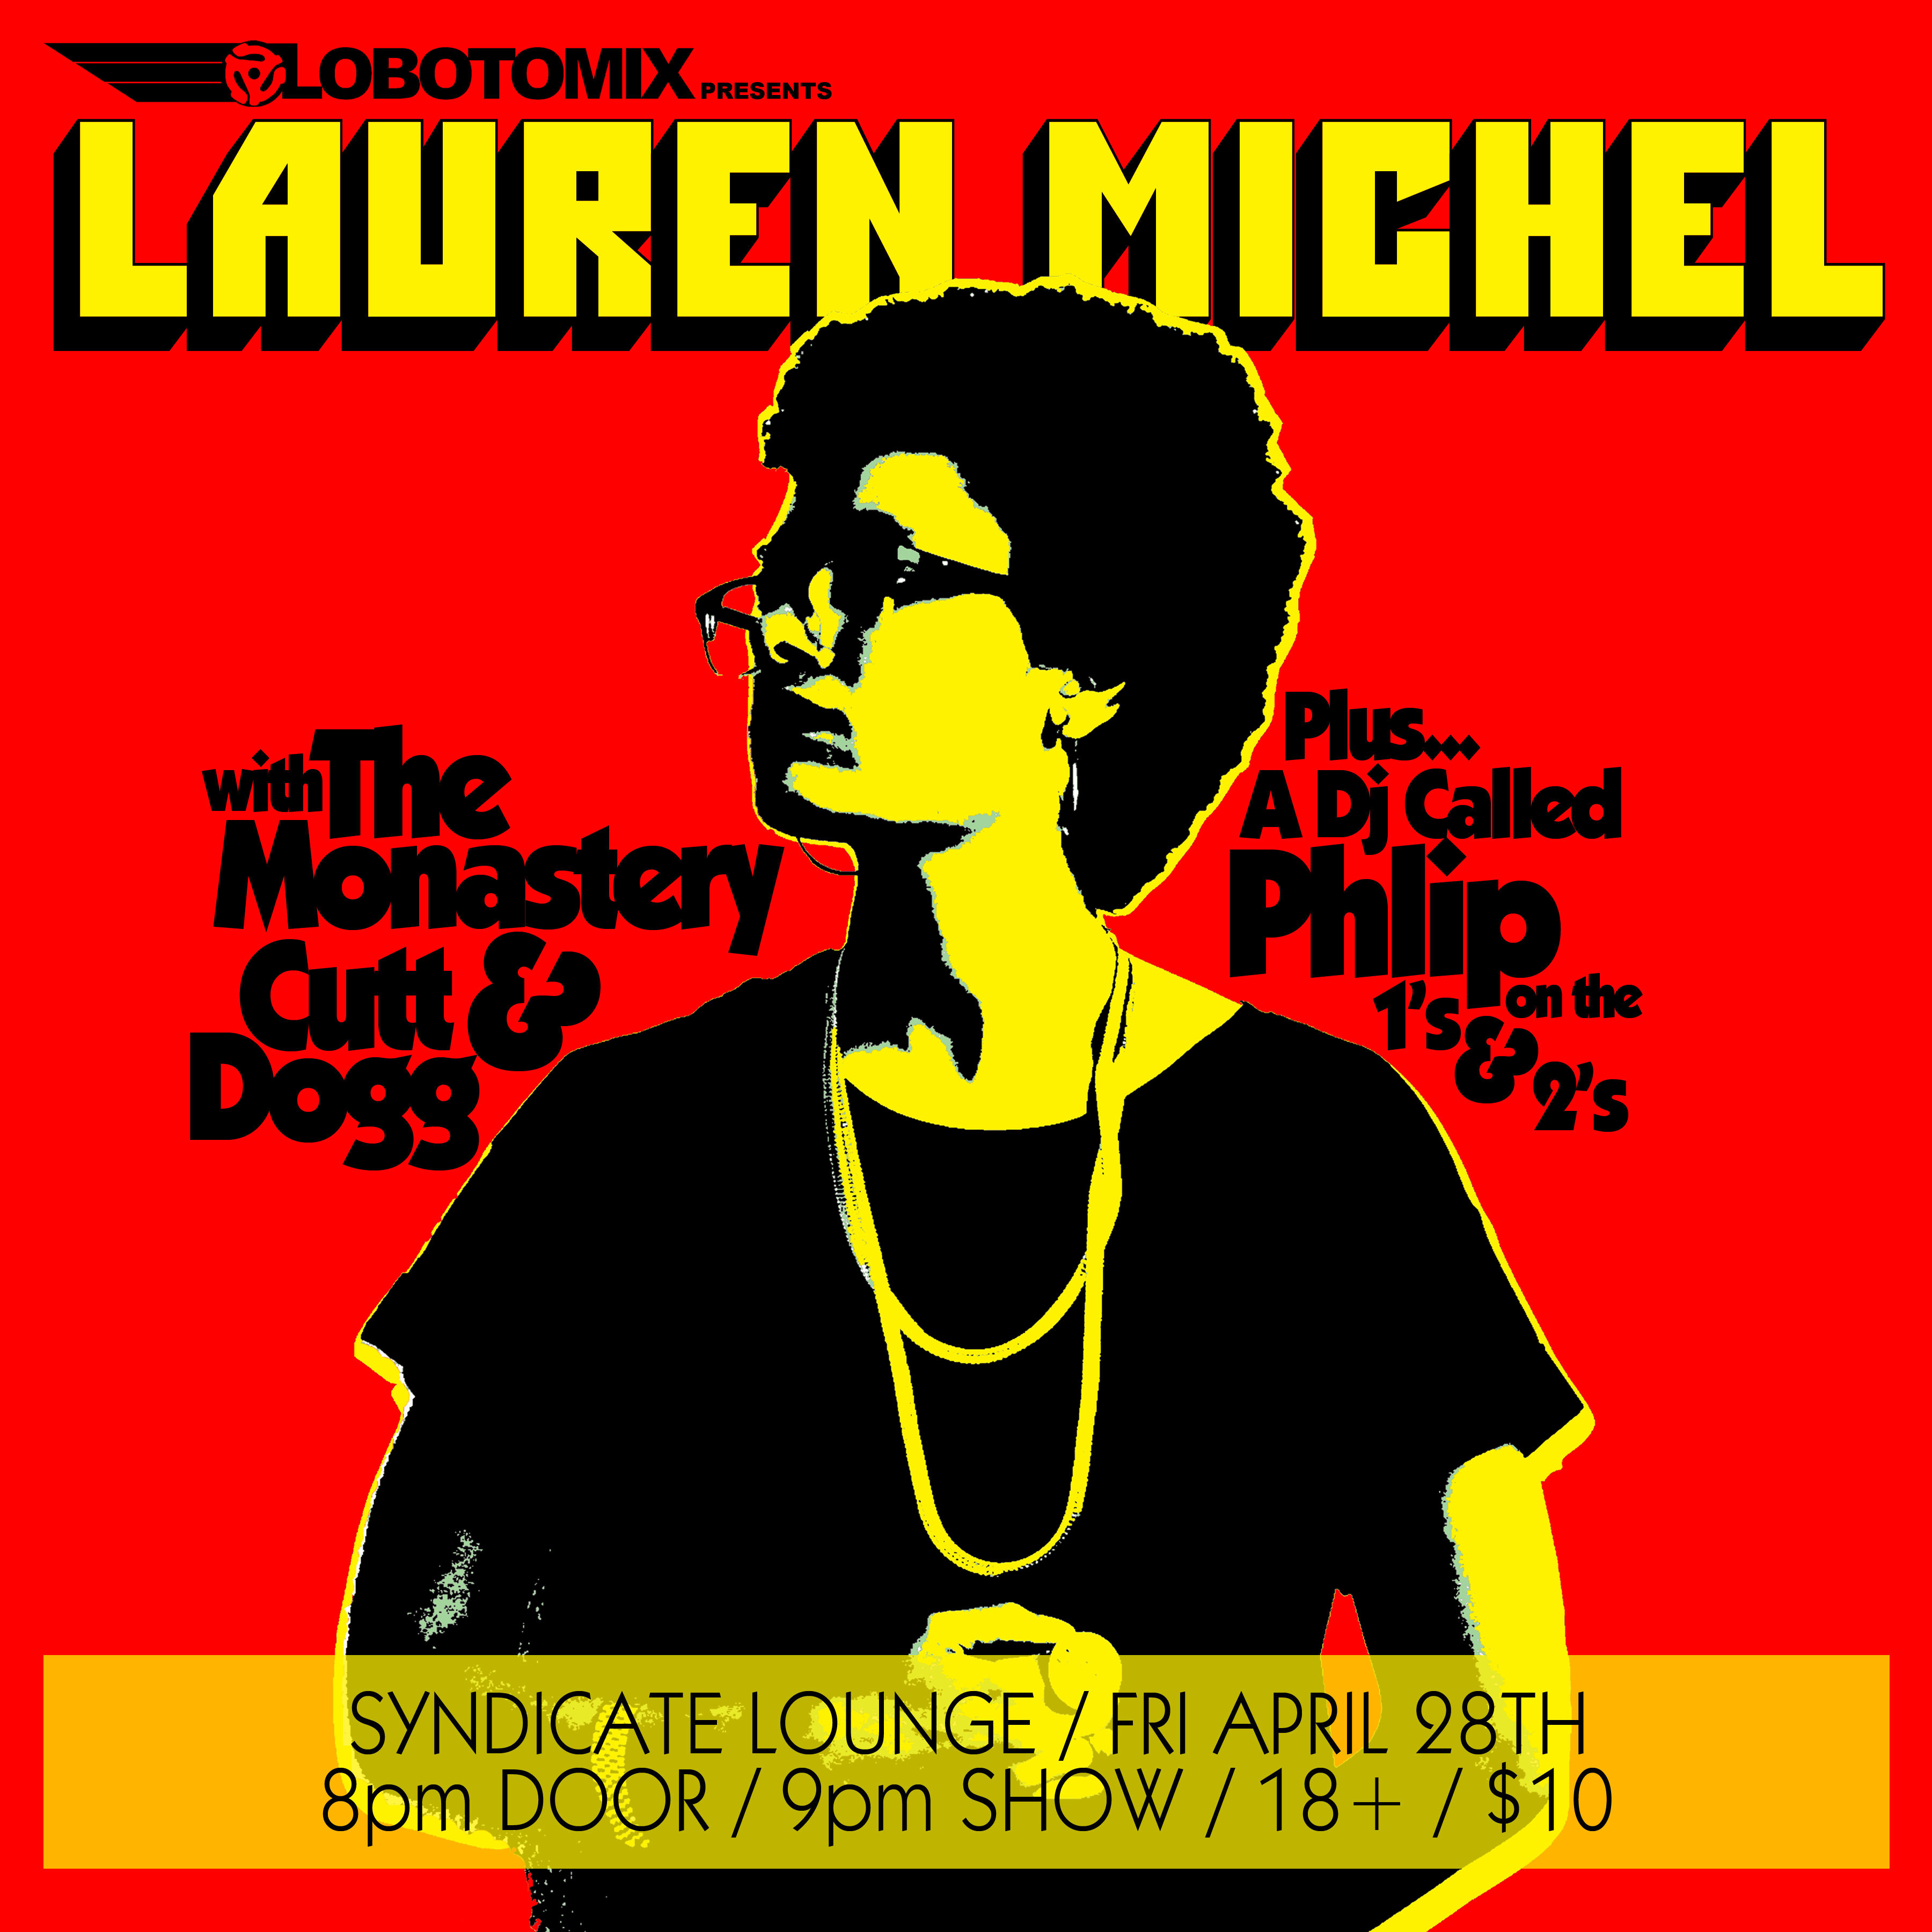 Lauren Michel / The Monastery / Cutt Dogg / A DJ Called Phlip